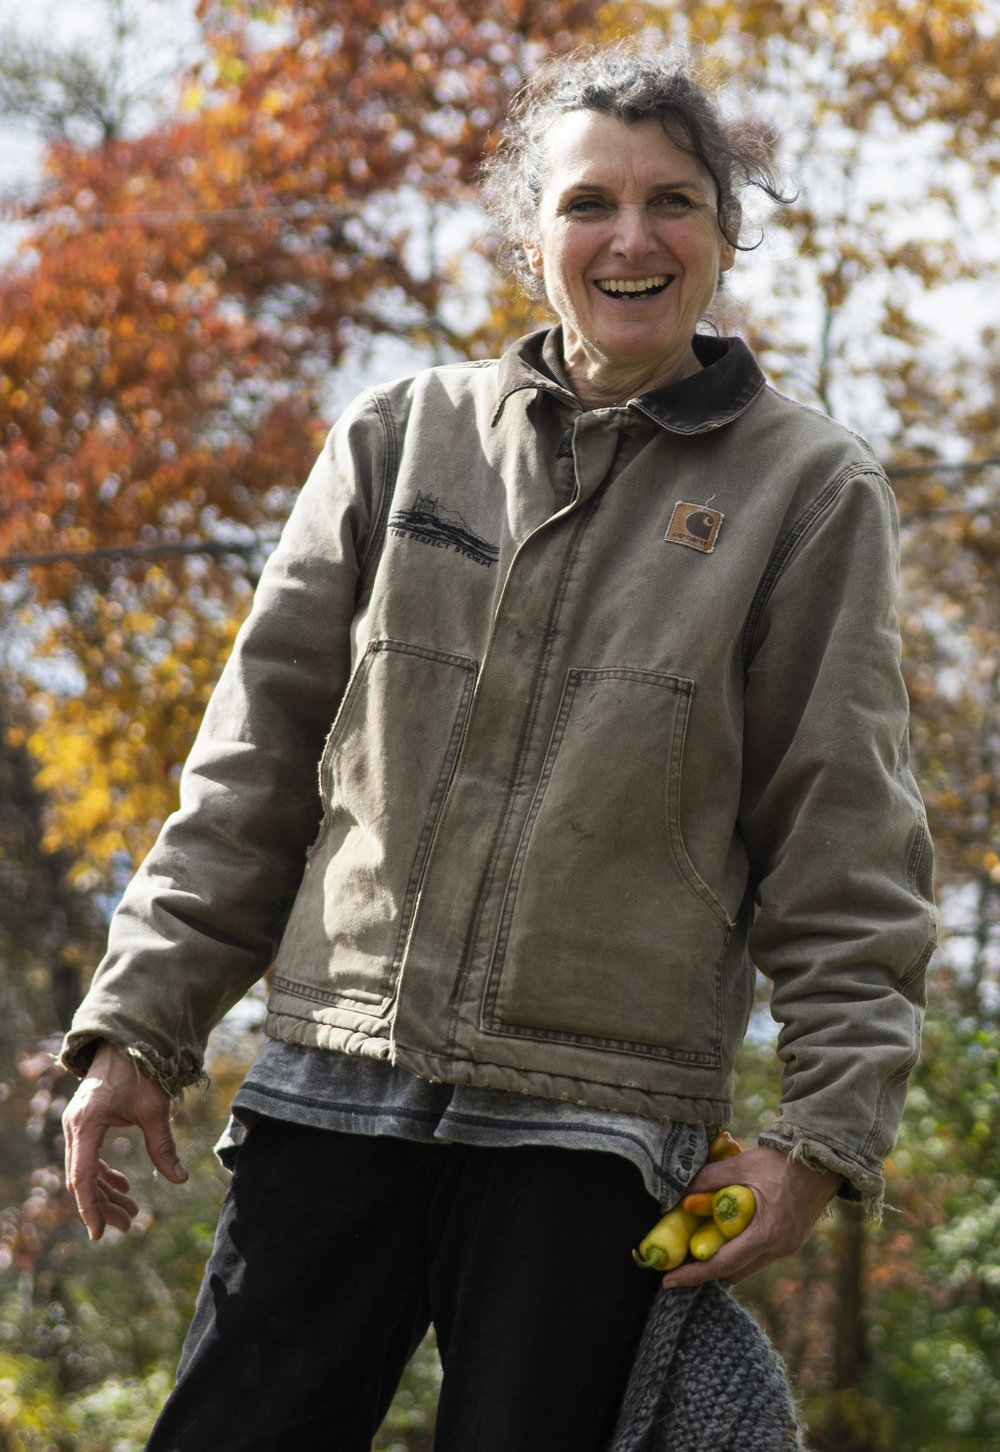 Renee Kredell, farm owner, jokes with students during the Crop Mob event at The Barn on Valley View Road in Bellefonte on Nov. 3, 2018. | Photo by: Noah Riffe